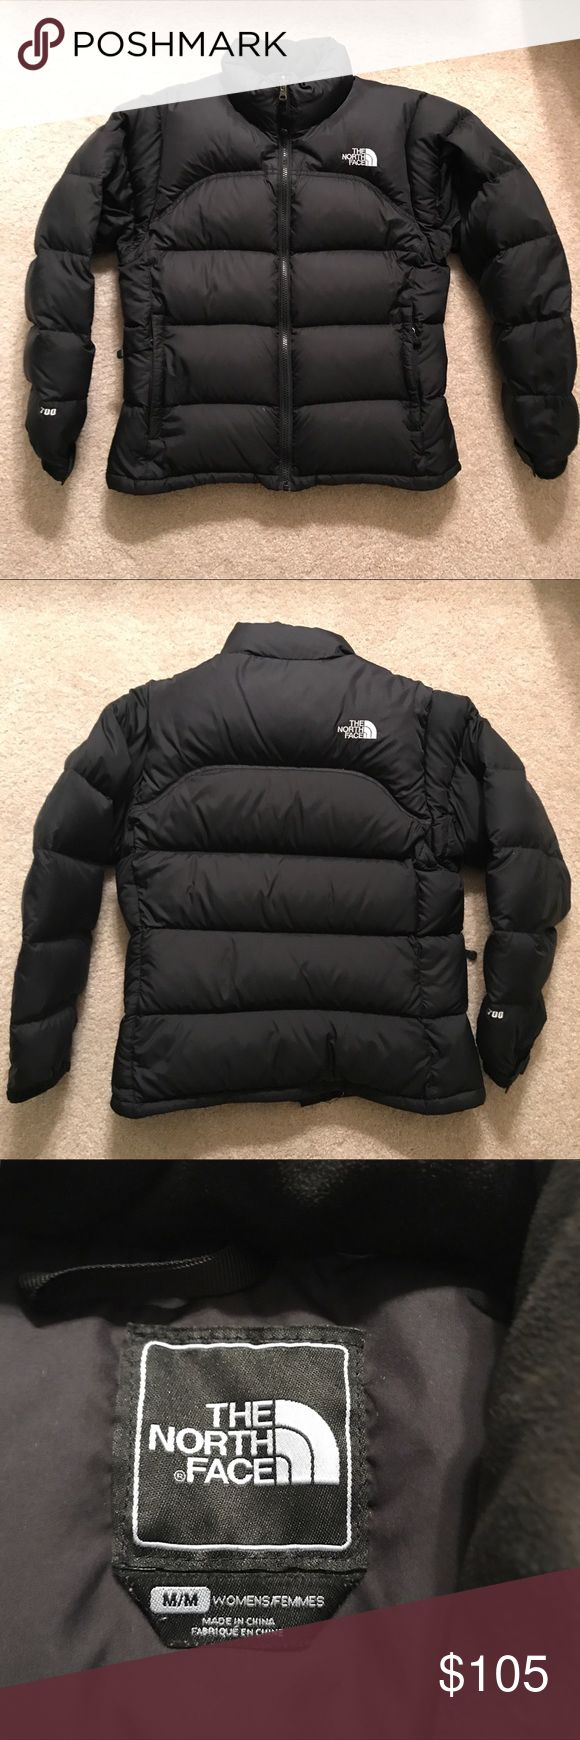 The North Face Nuptse Jacket A warm but lightweight goose down jacket for women. Gently used but in EXCELLENT condition! Two exterior pockets and internal zipper. The North Face Jackets & Coats Puffers